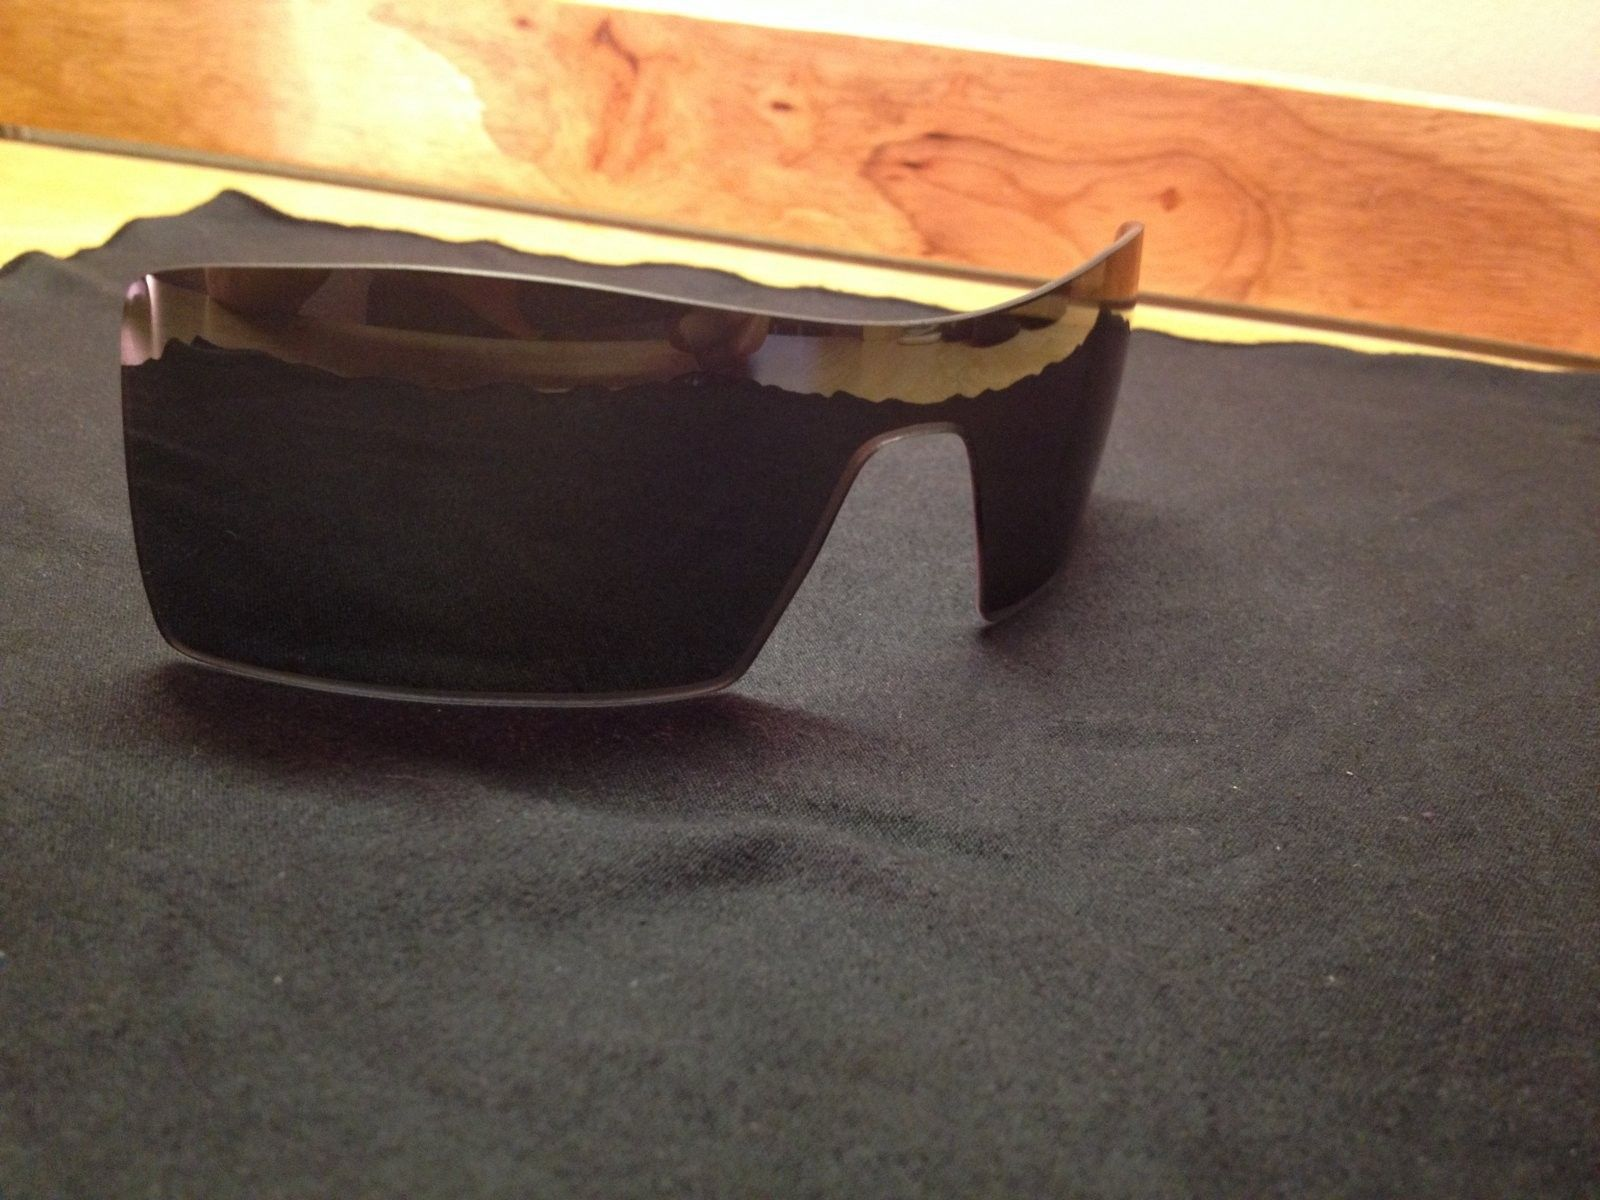 Few Bags, Pins, Polarized Lenses, Rubbers, And More! - photo 3.JPG